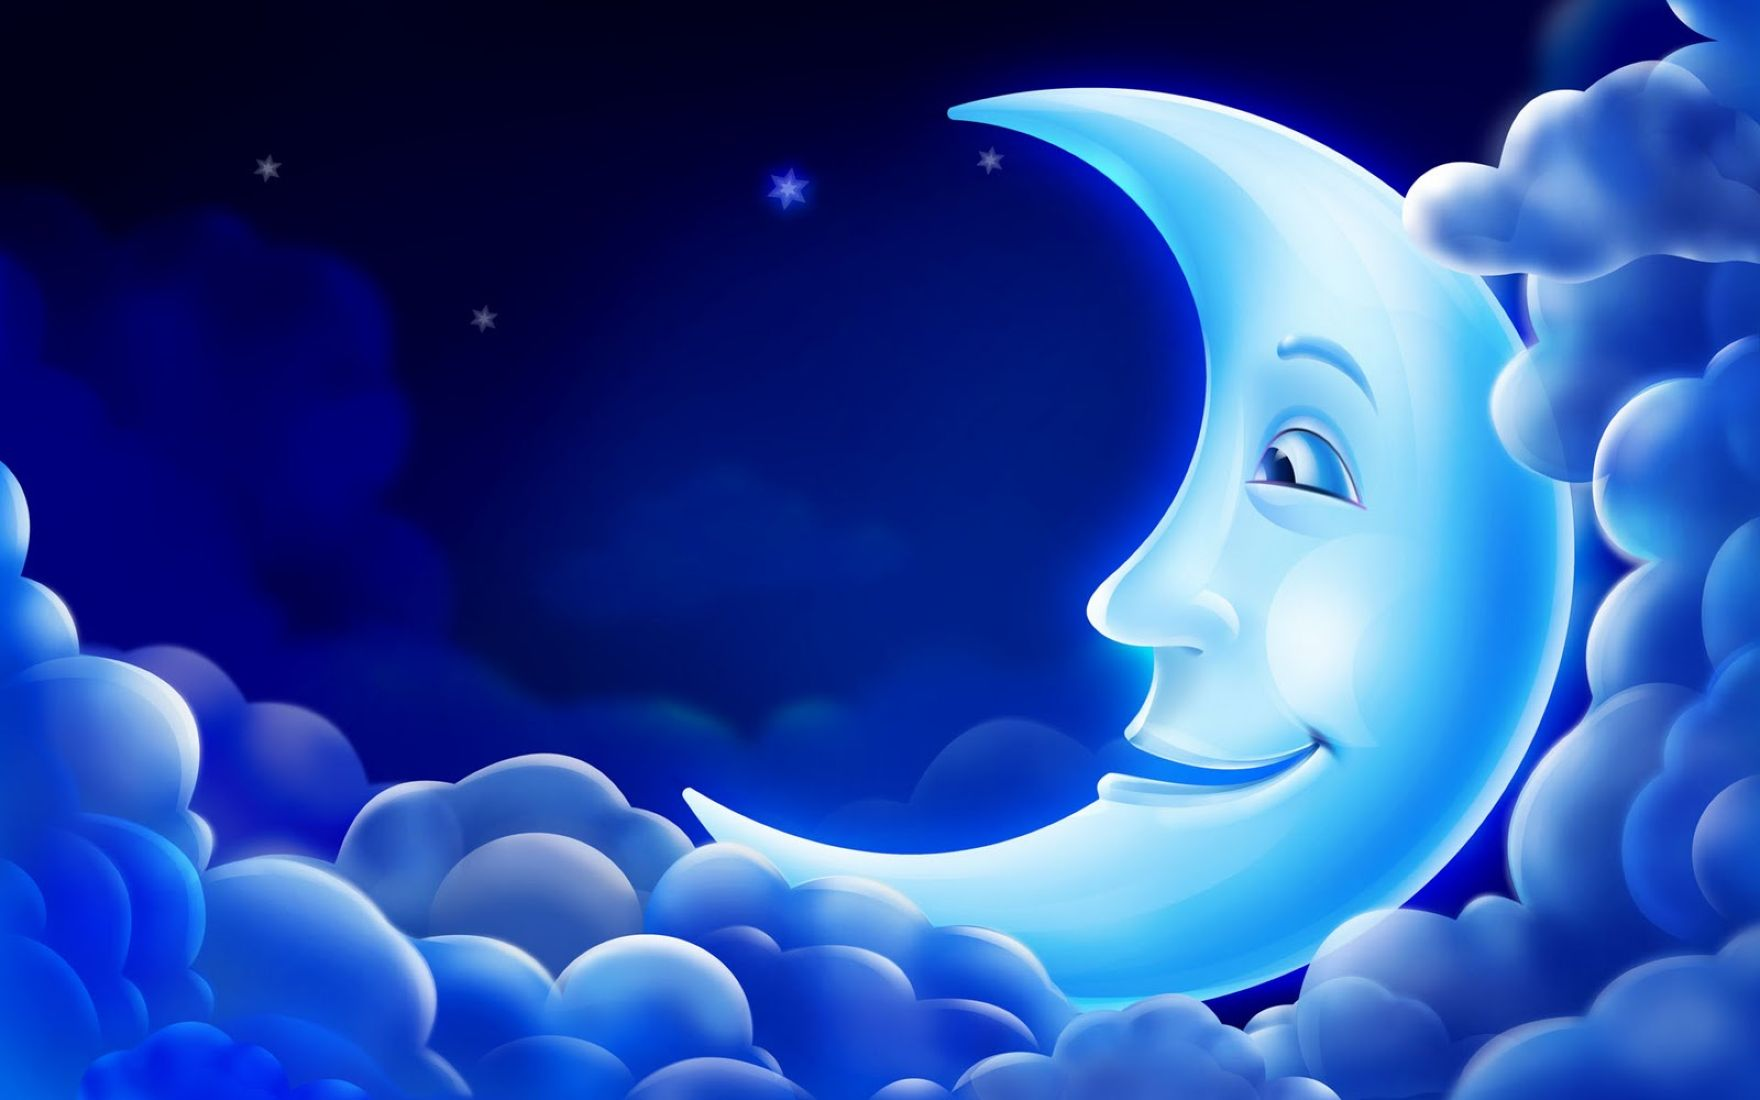 3d Blue Moon Background For Computer Wallpaper Desktop Hd